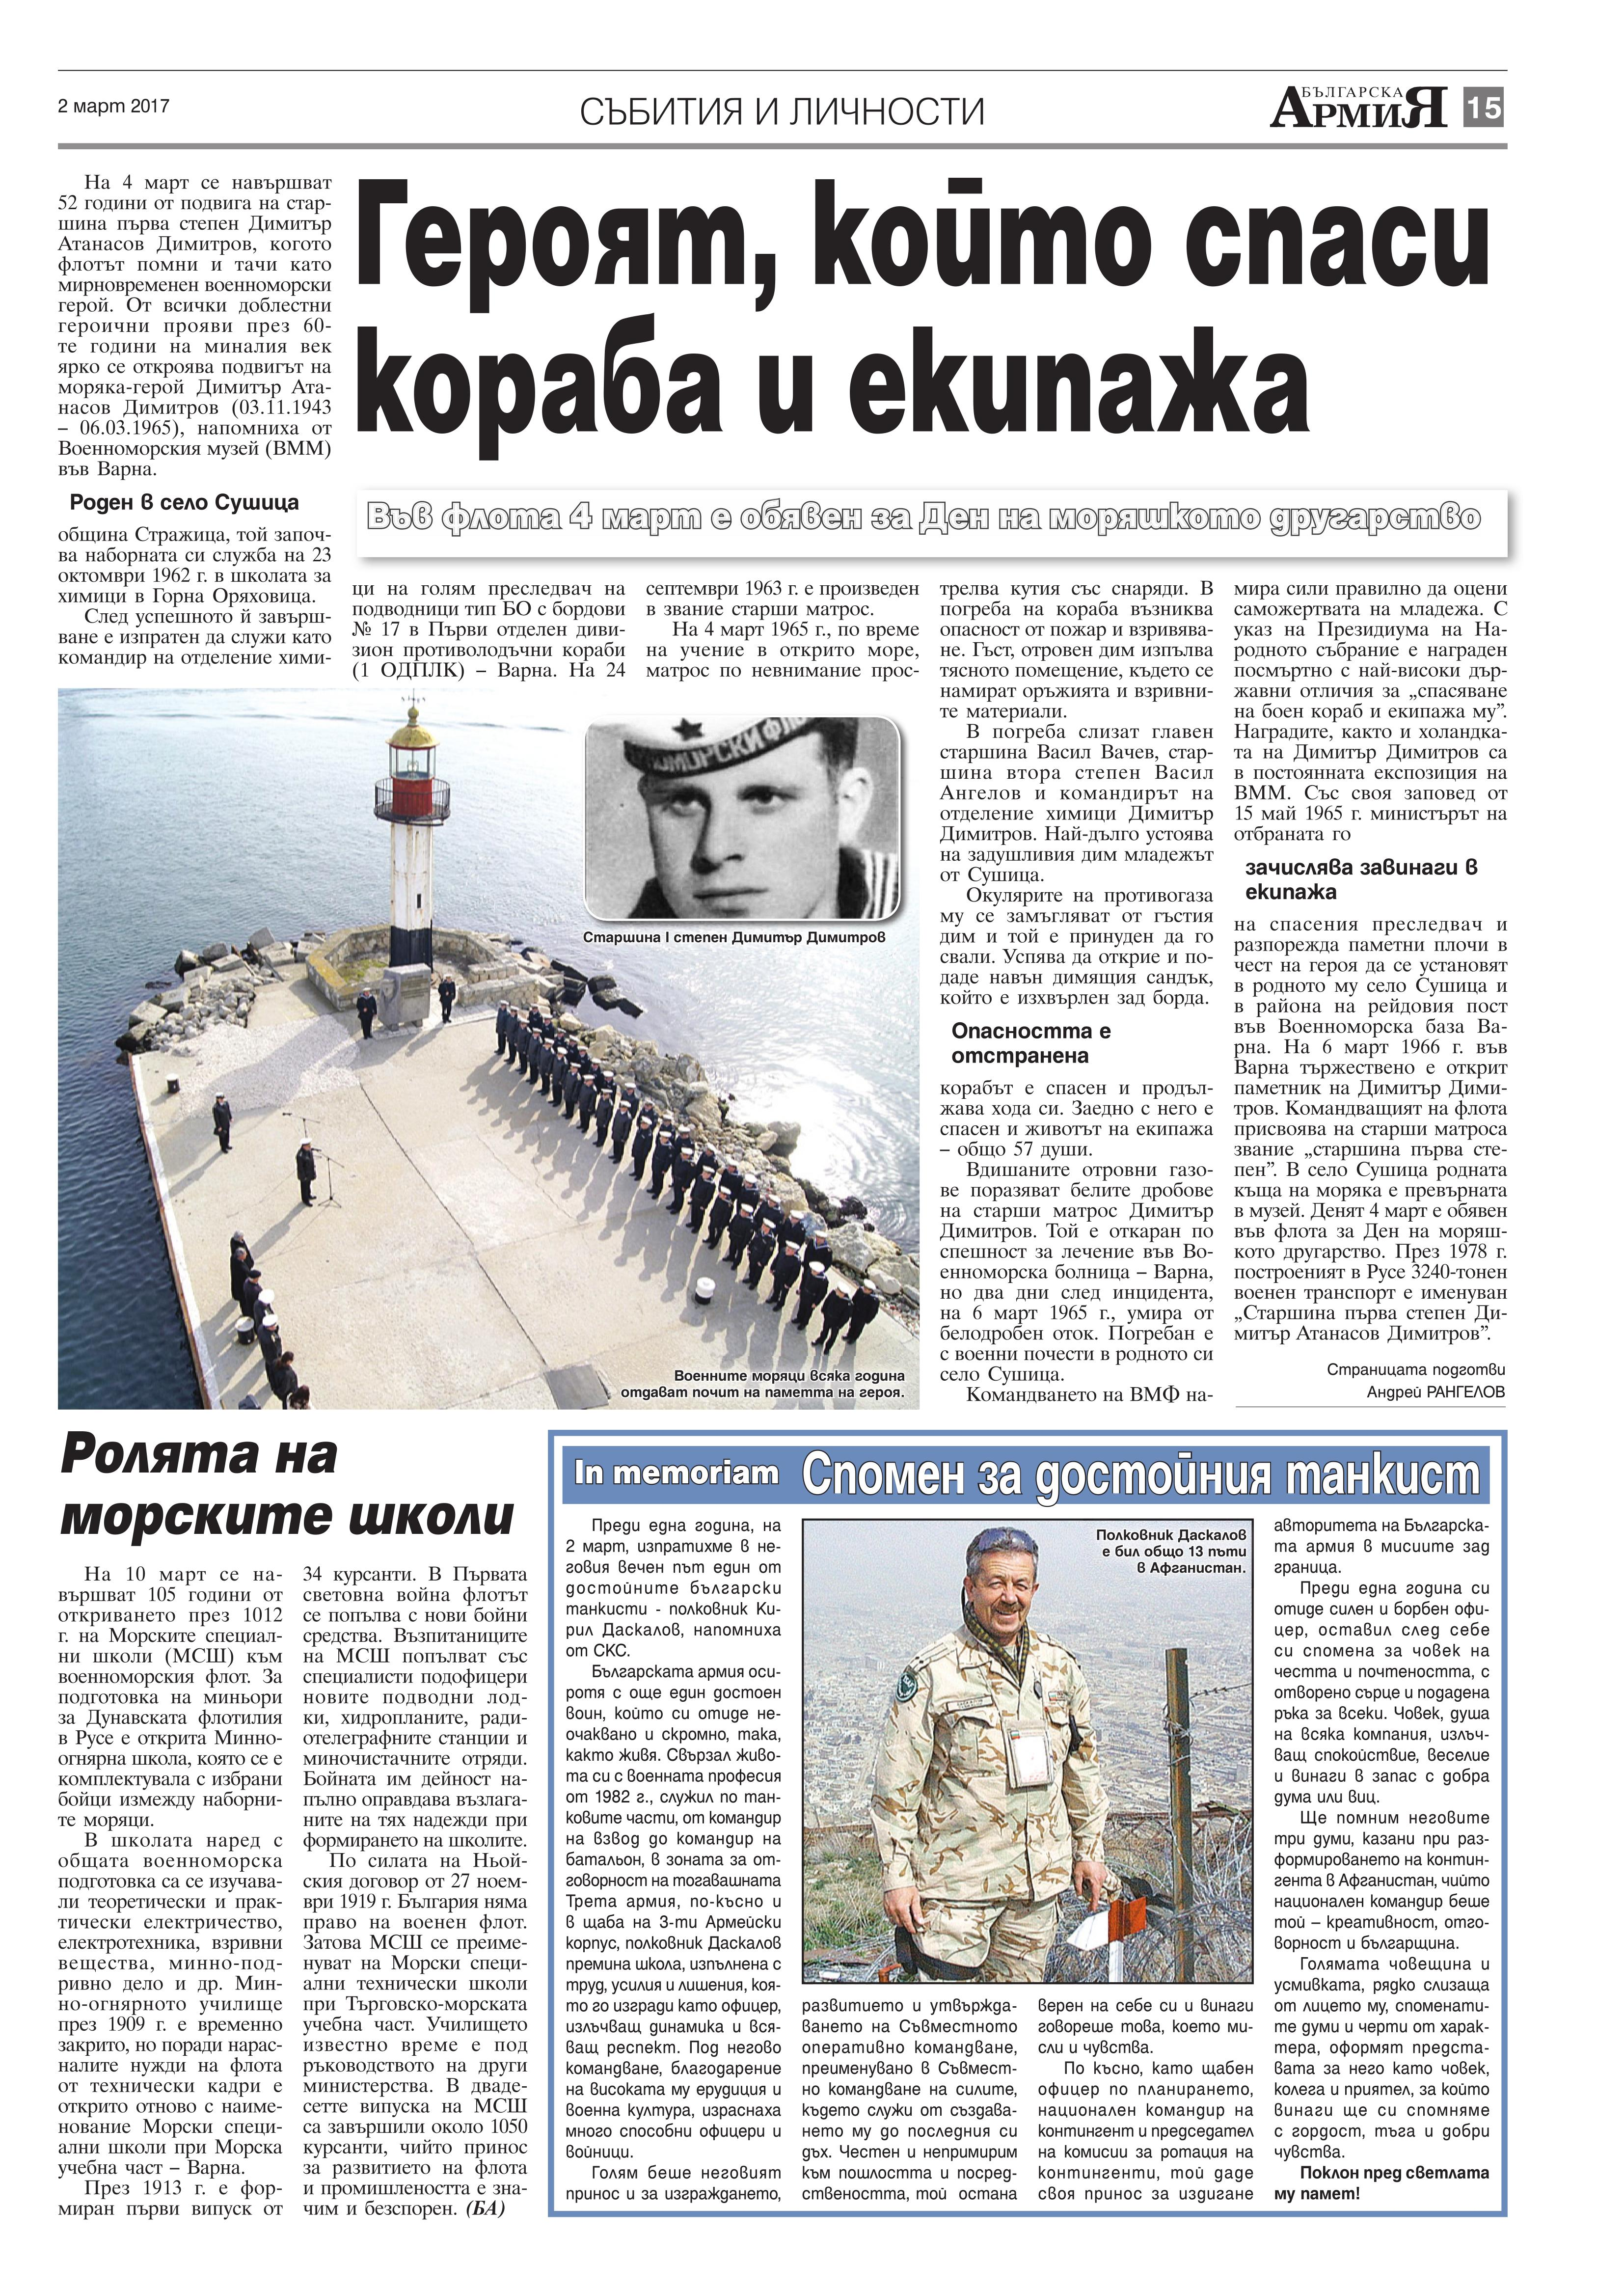 https://www.armymedia.bg/wp-content/uploads/2015/06/15.page1_-15.jpg